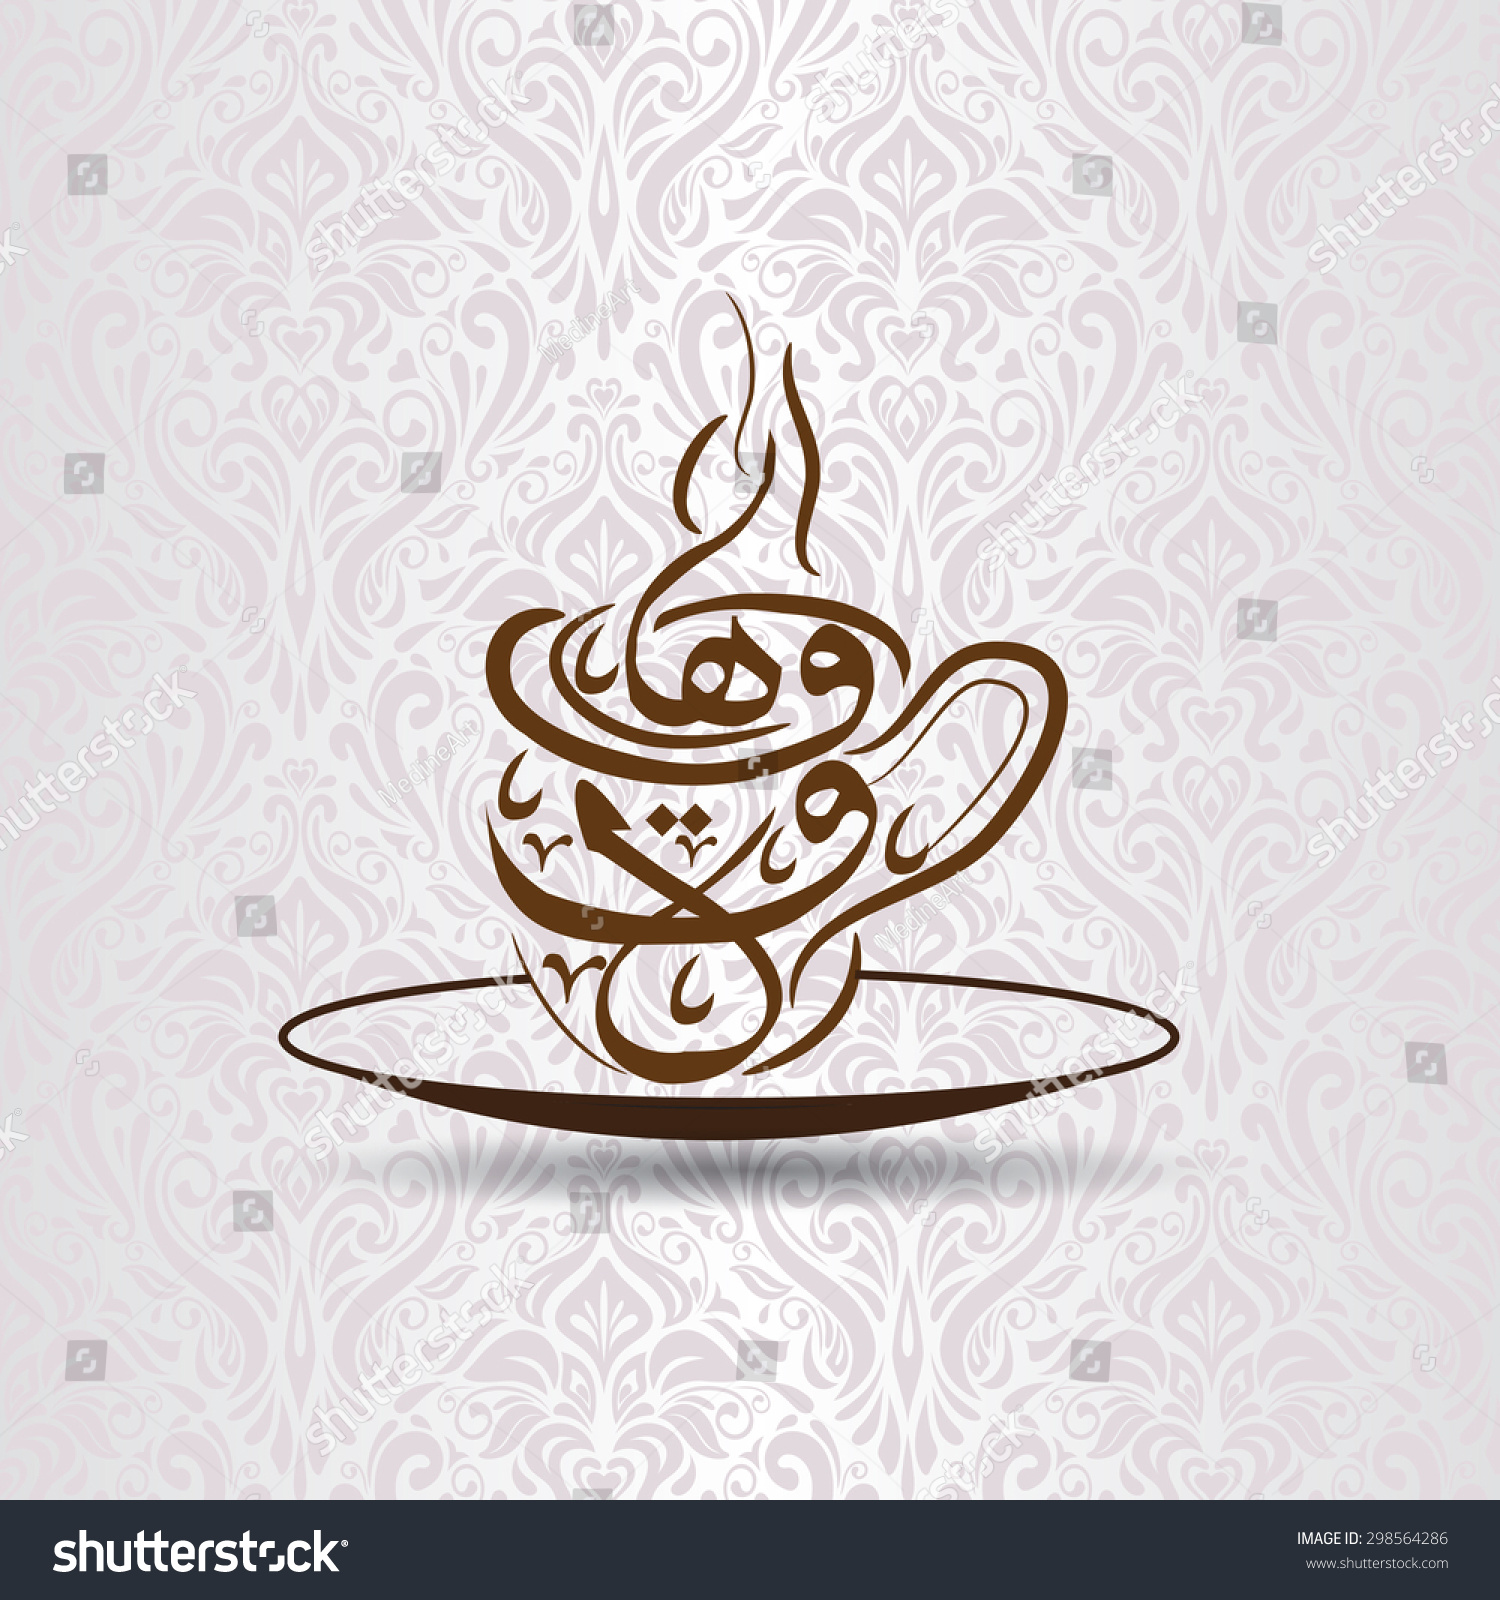 Coffee logo arab background arabic calligraphy stock Calligraphy logo